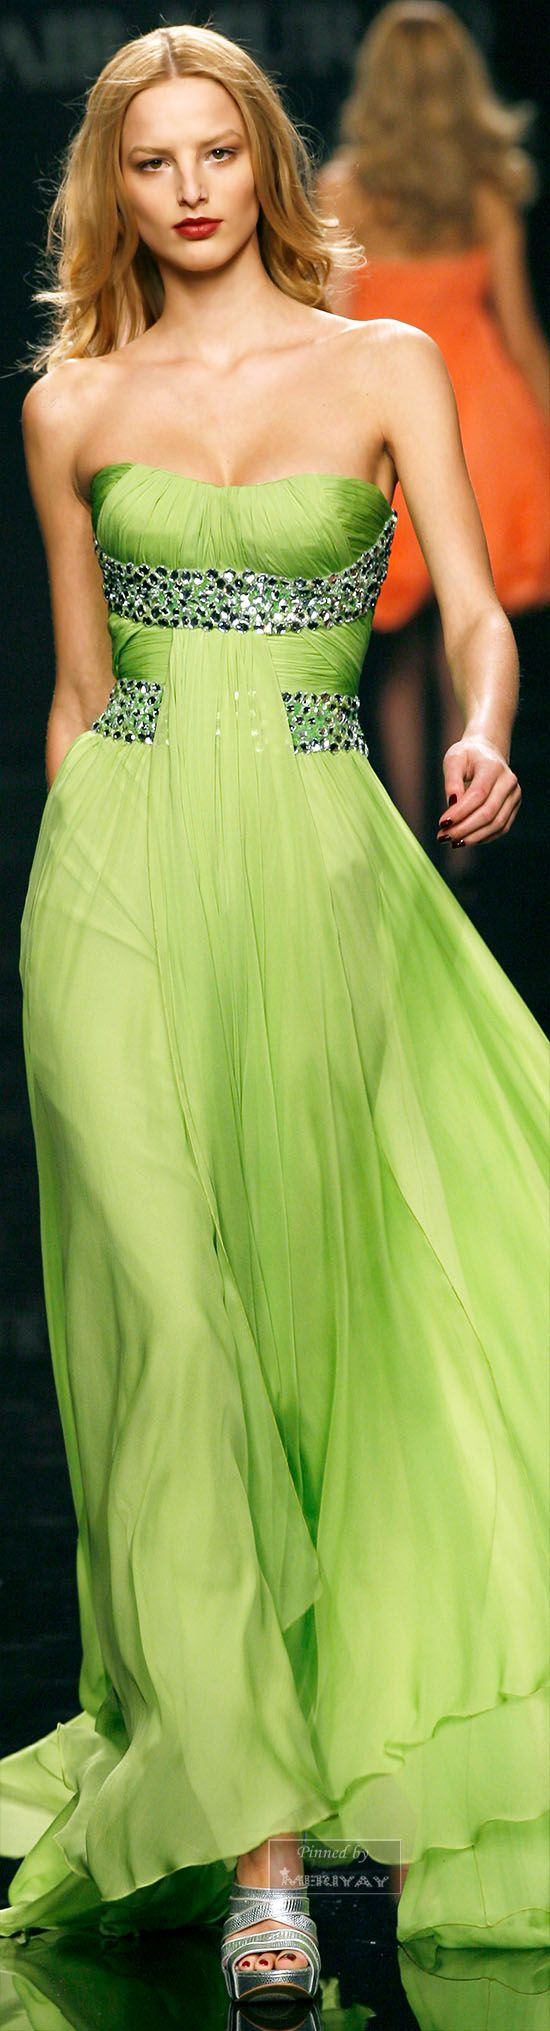 83 best greencelerylimekelly images on pinterest ancient light green dress by zuhair murad ombrellifo Image collections